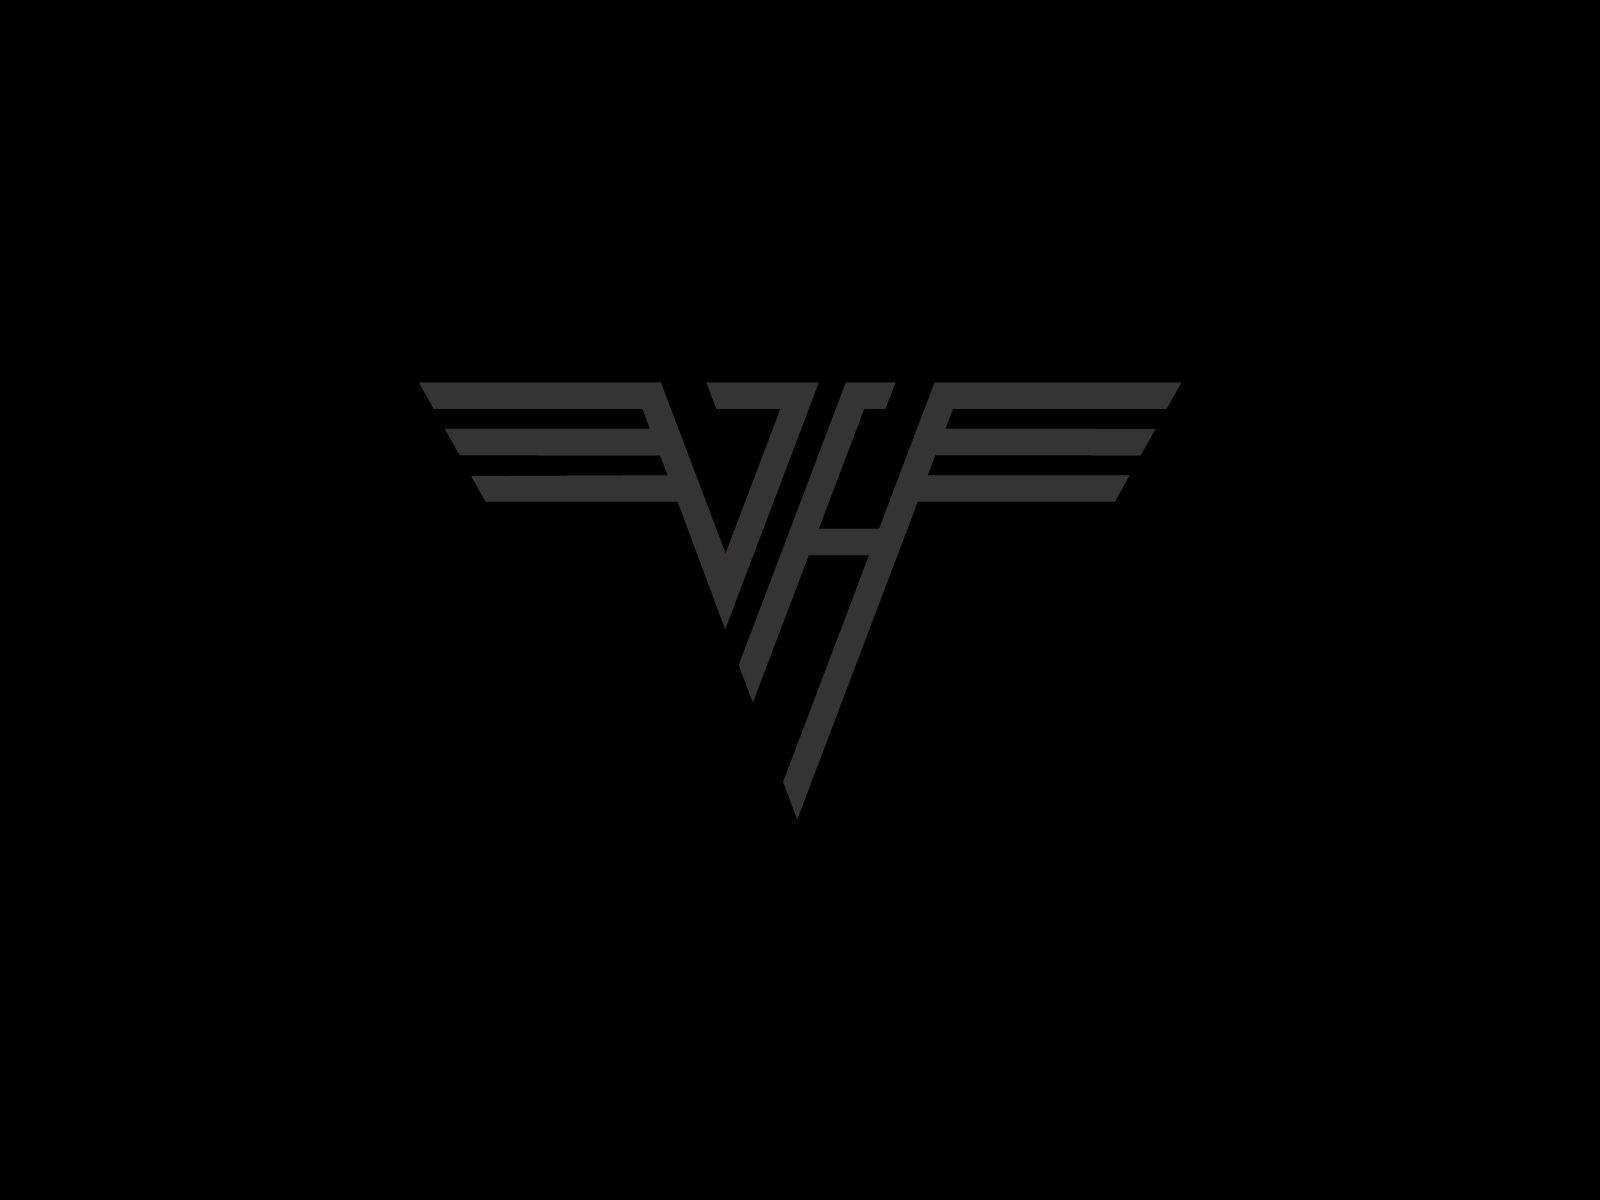 Van Halen logo and wallpapers